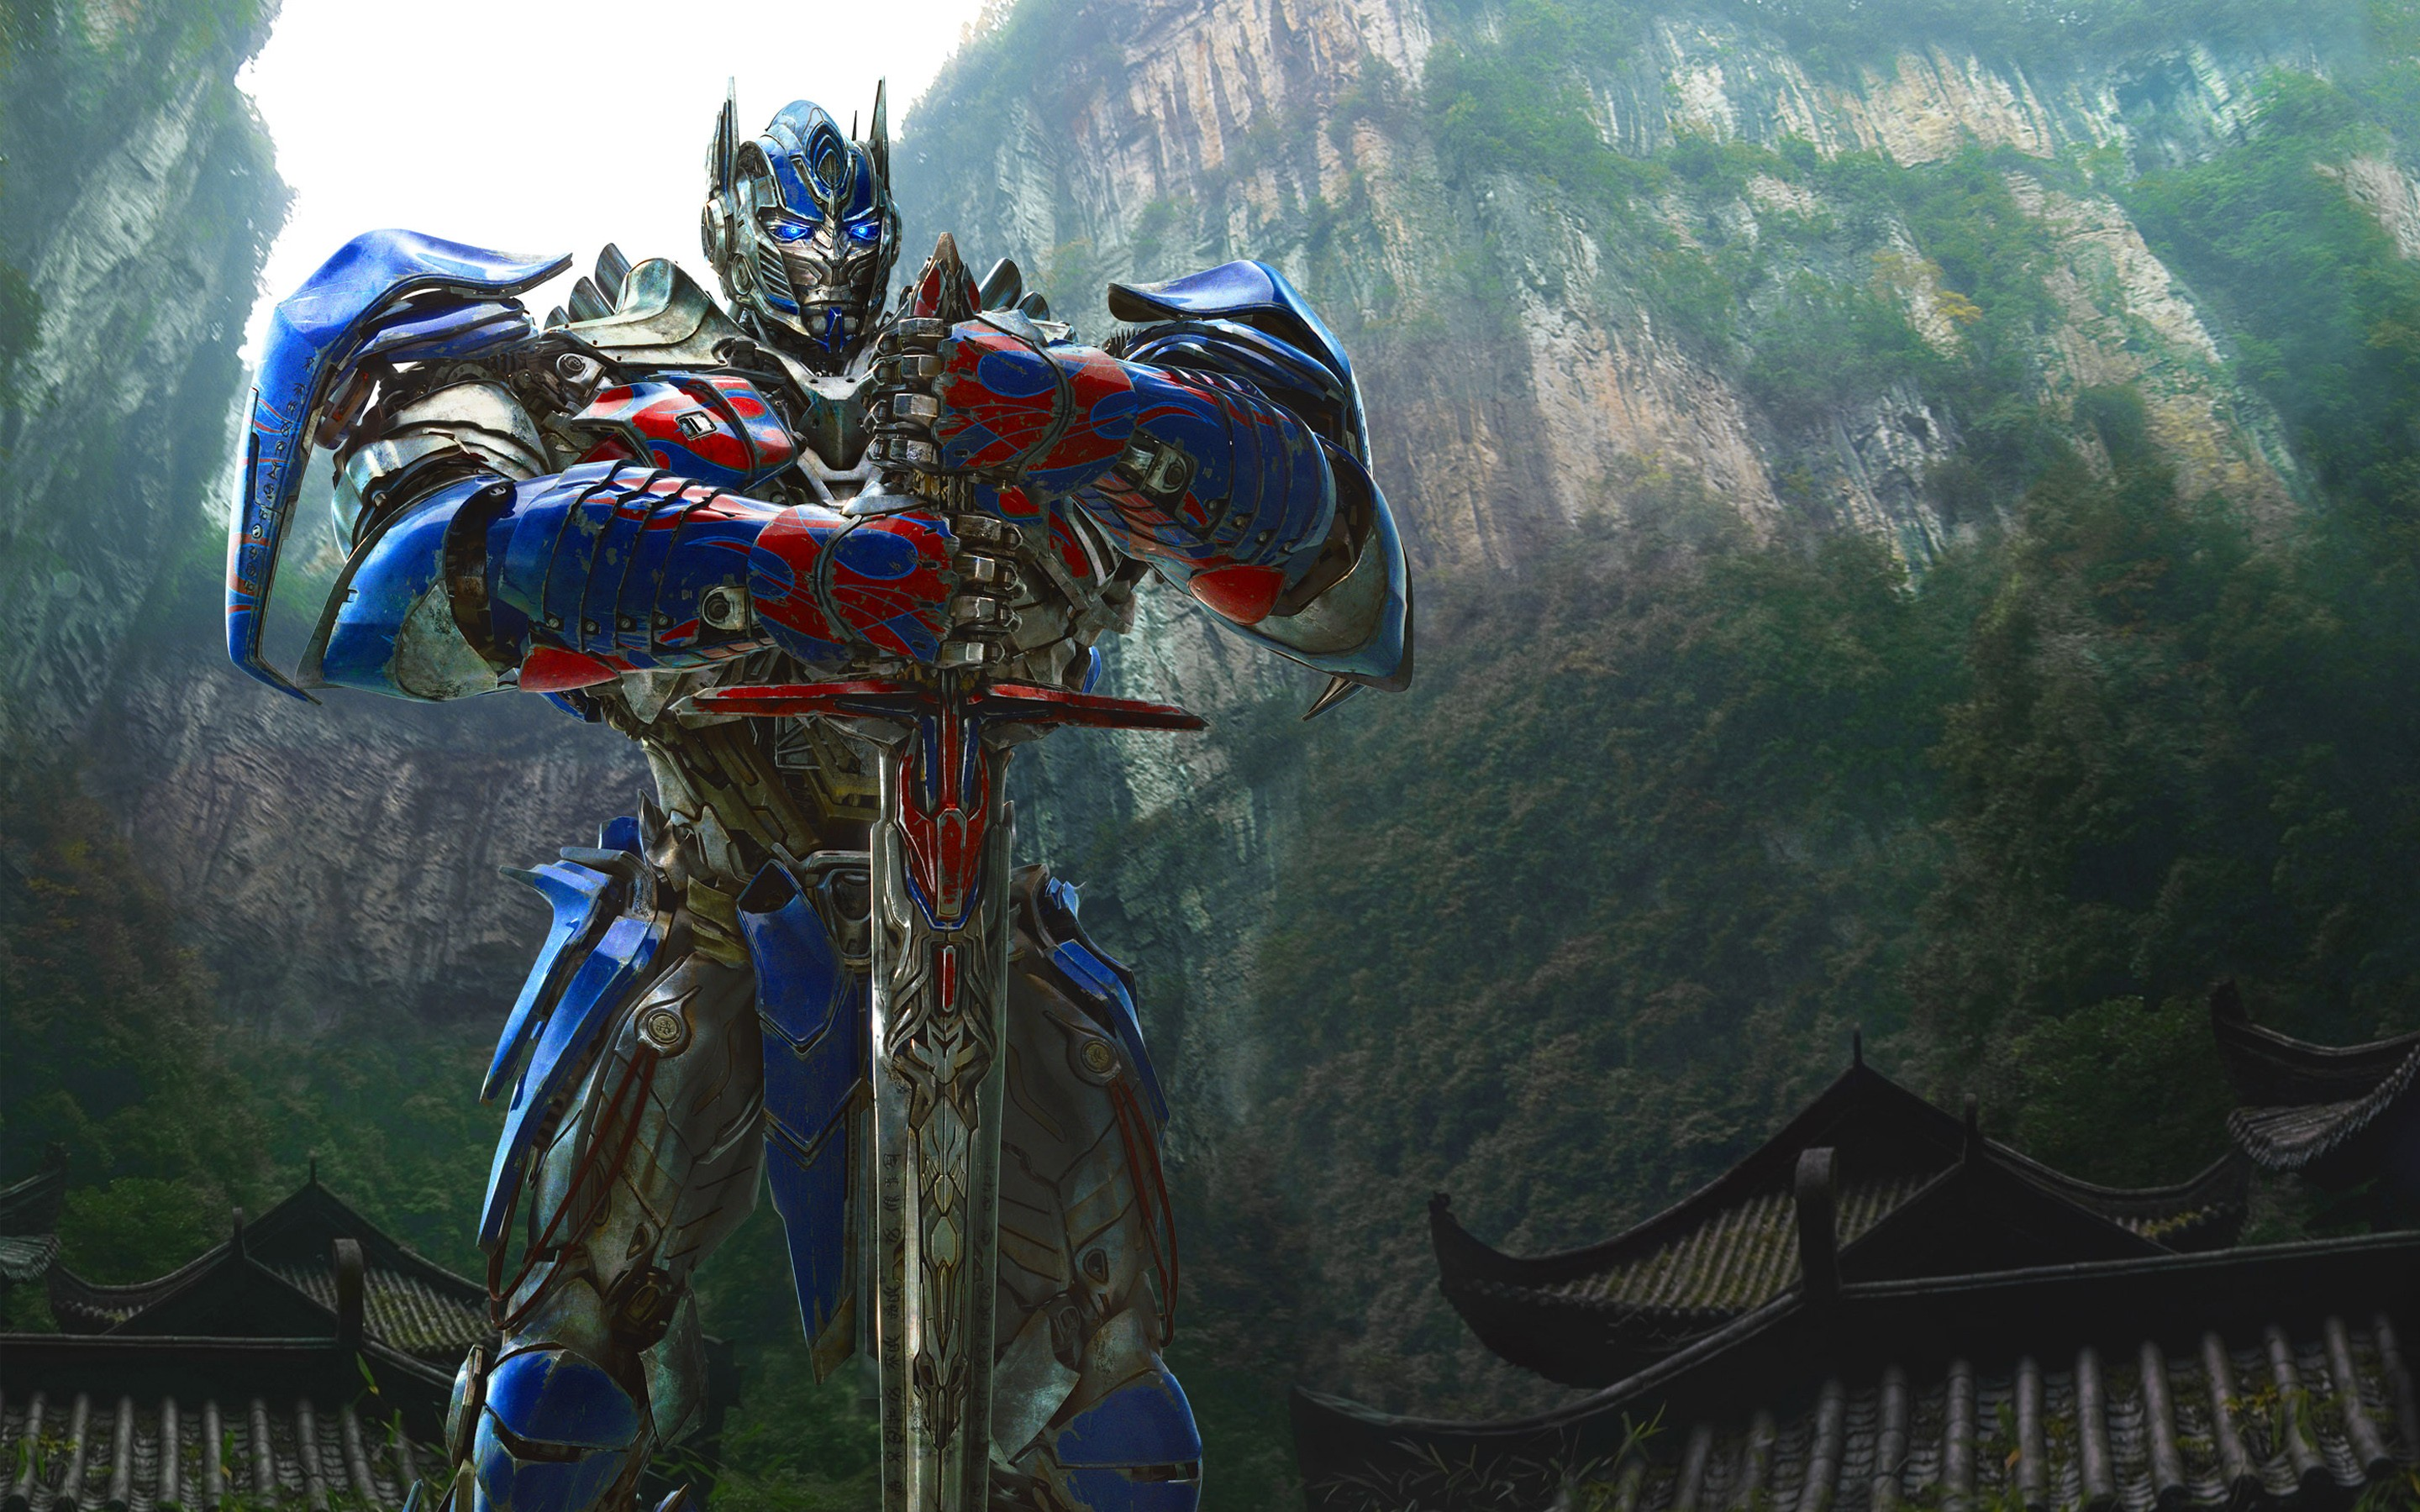 Hd transformers wallpapers & backgrounds for free download.